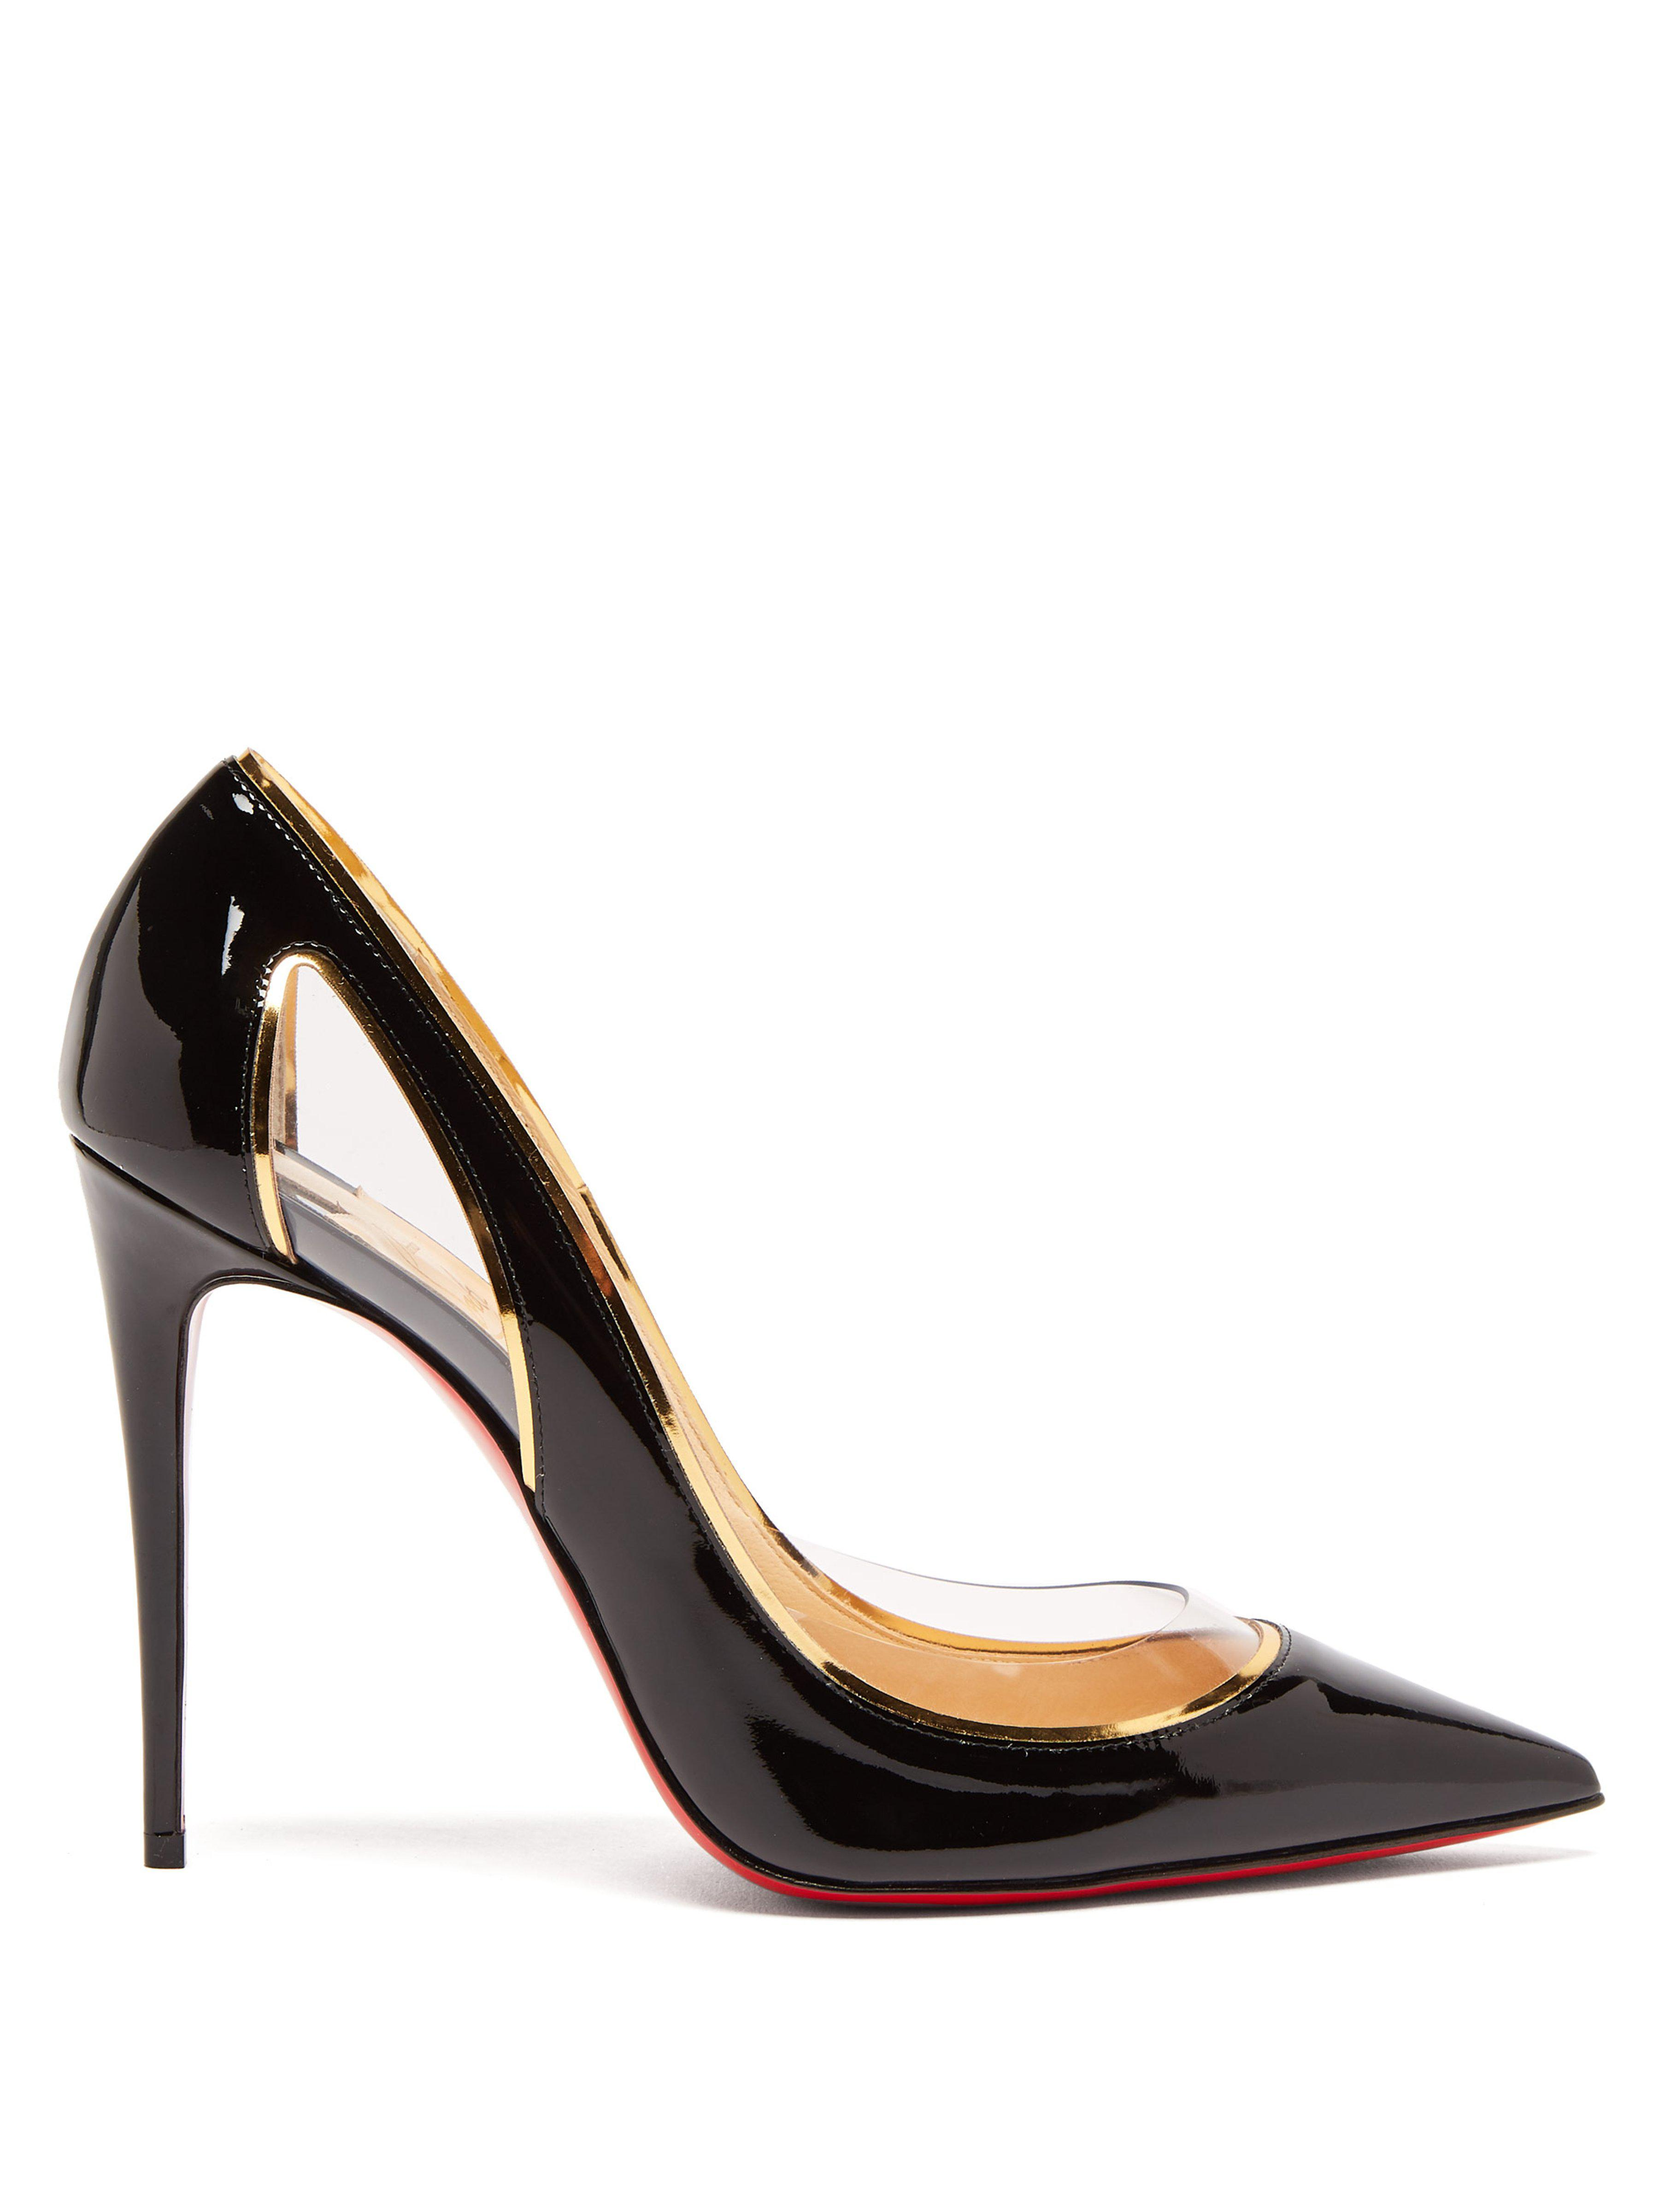 579e7b42c35 Christian Louboutin. Women s Black Cosmo 554 100 Patent Leather Court Shoes